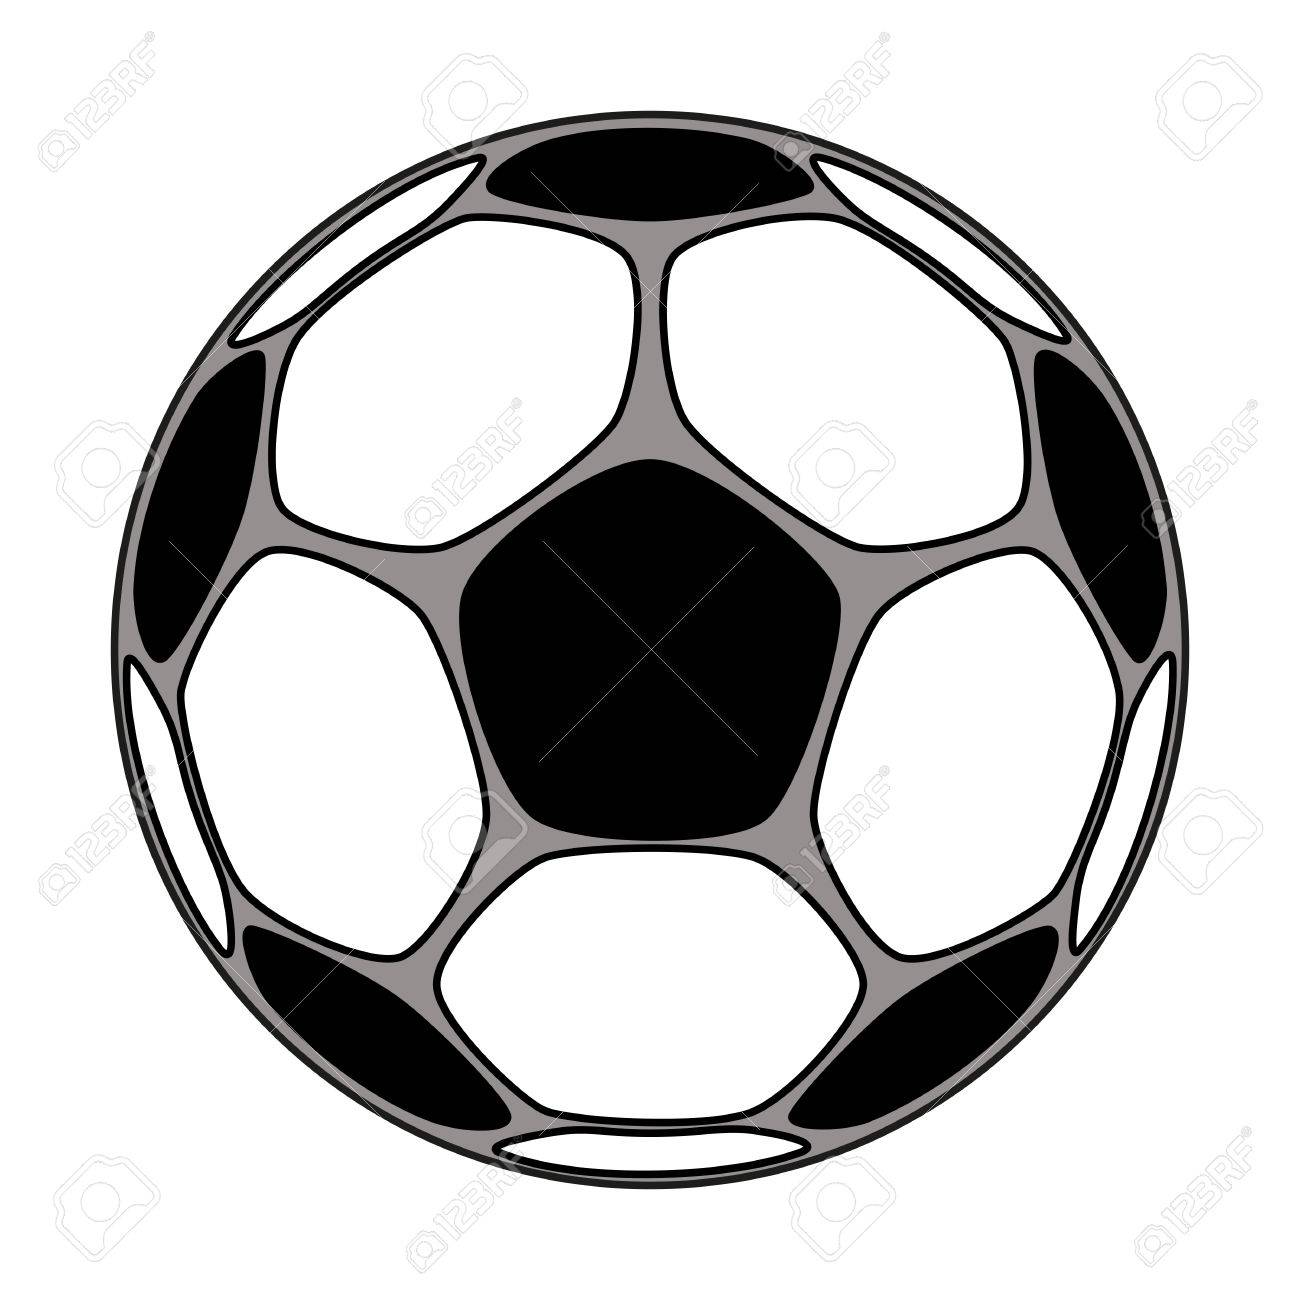 vector icon of soccer ball isolated clip art royalty free cliparts rh 123rf com soccer ball clip art cartoon soccer ball clip art cartoon